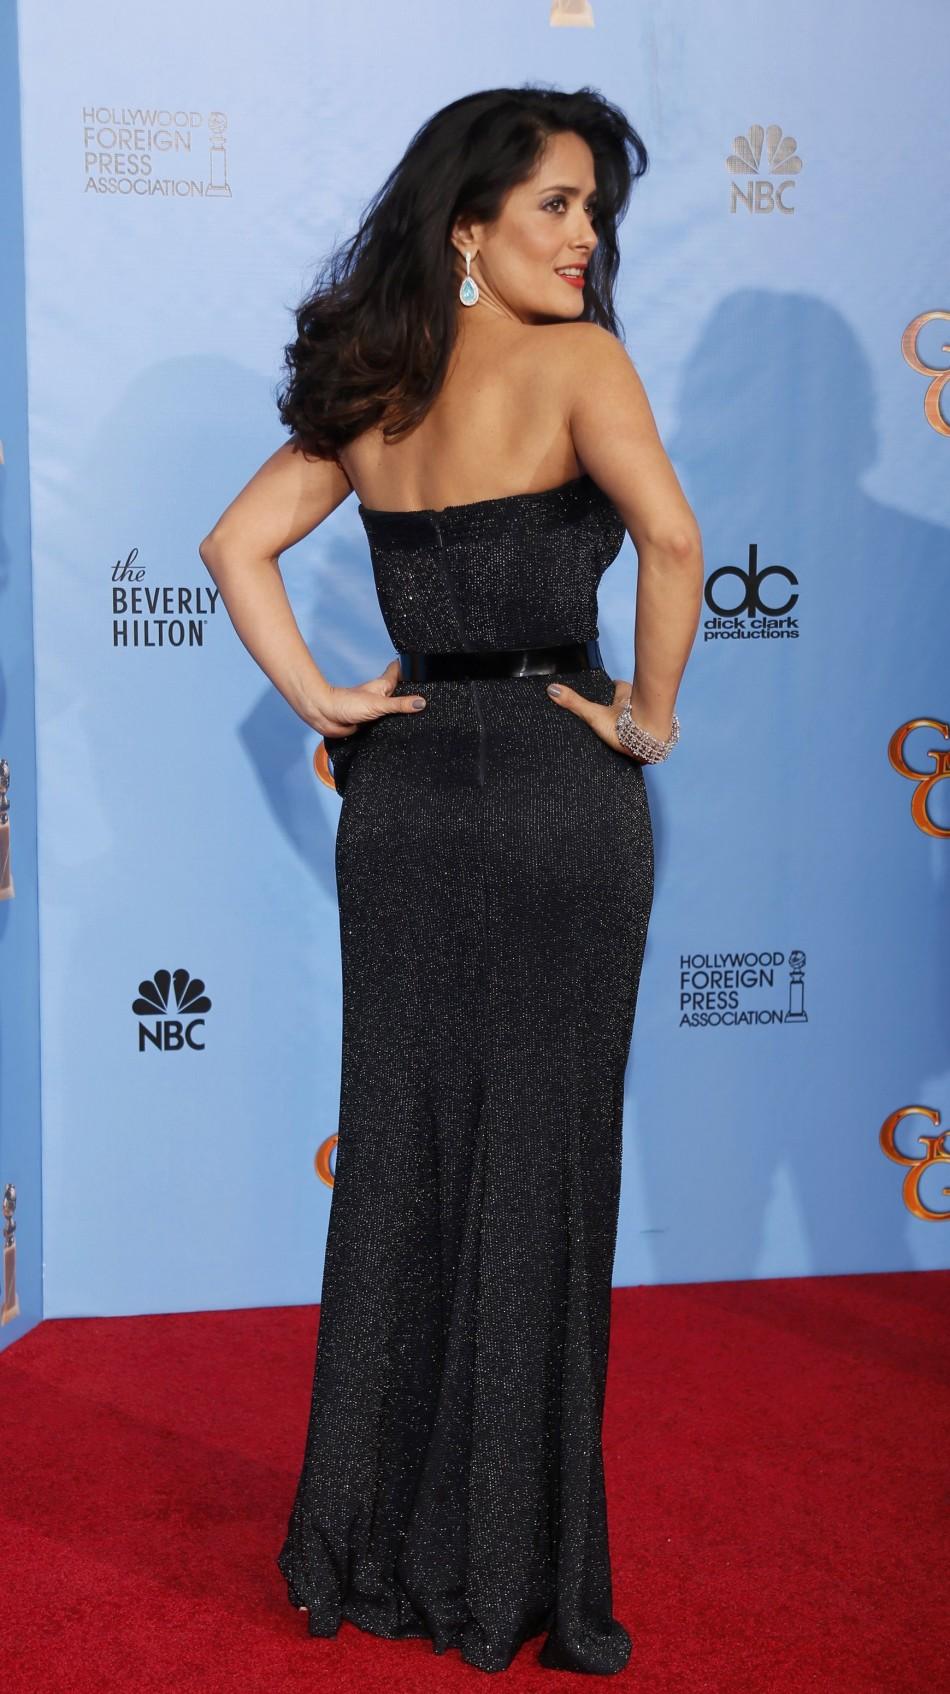 Actress Salma Hayek poses backstage after presenting an award at the 70th annual Golden Globe Awards in Beverly Hills